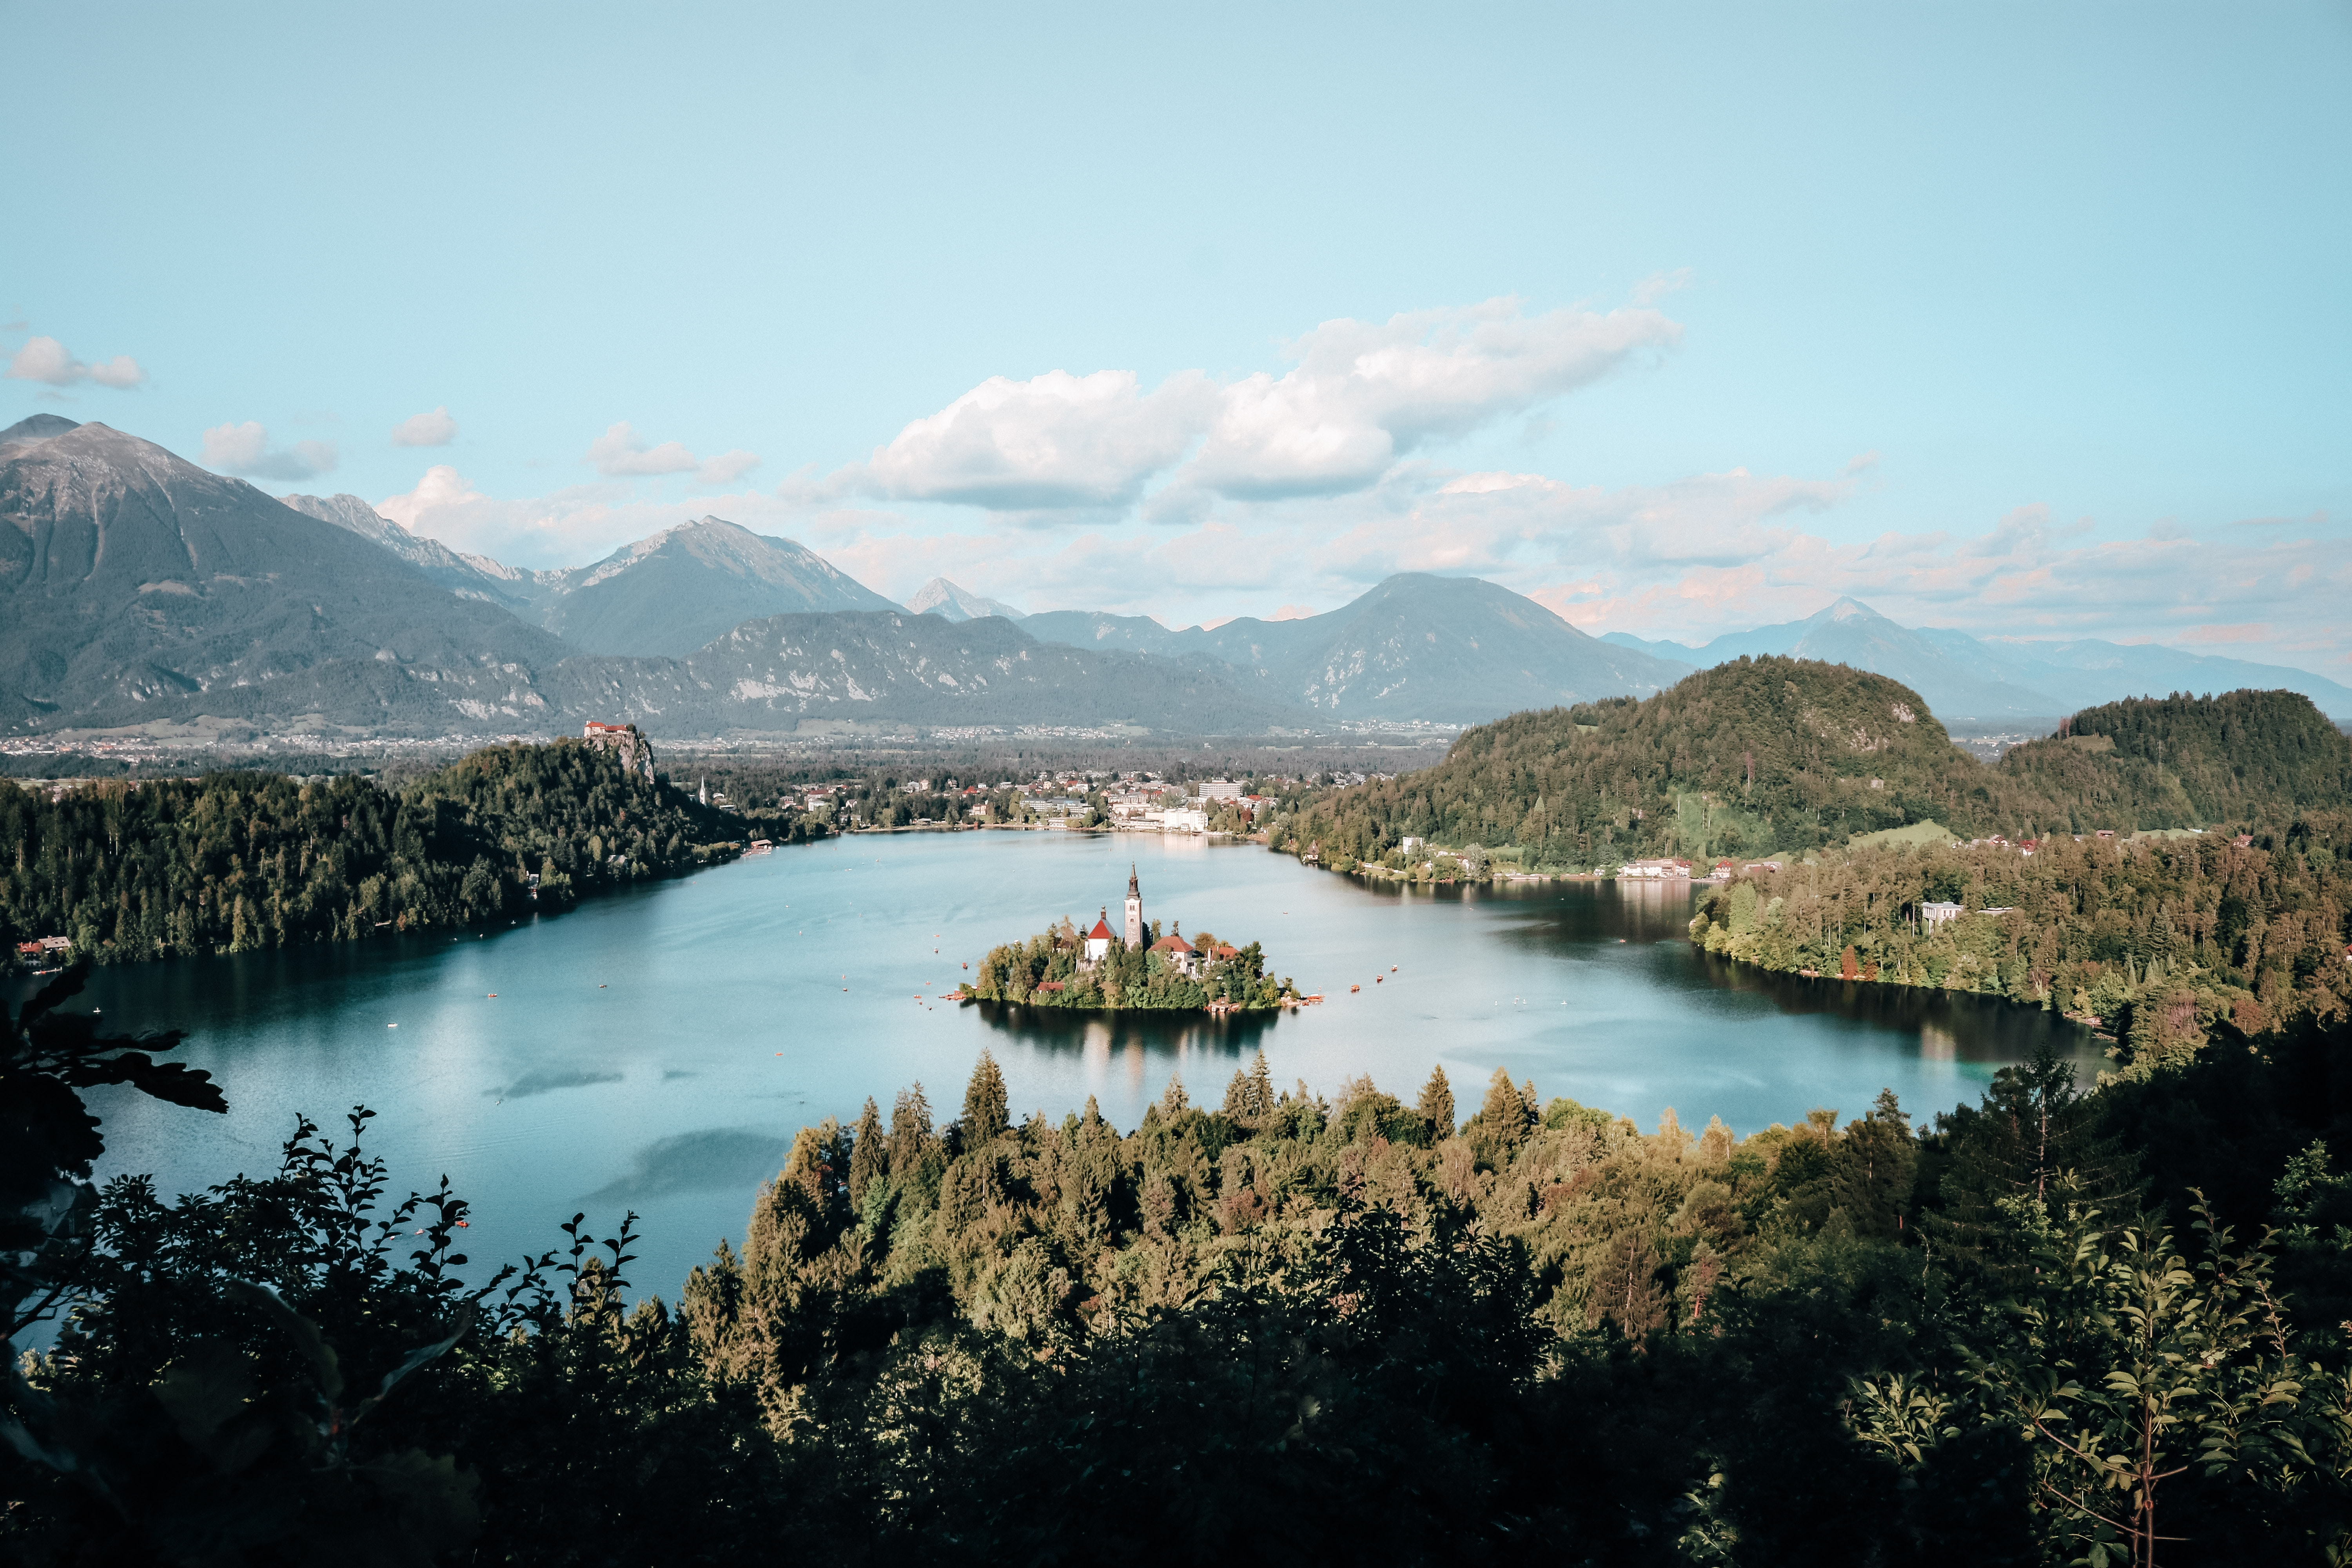 aerial view photography of lake surrounded by trees